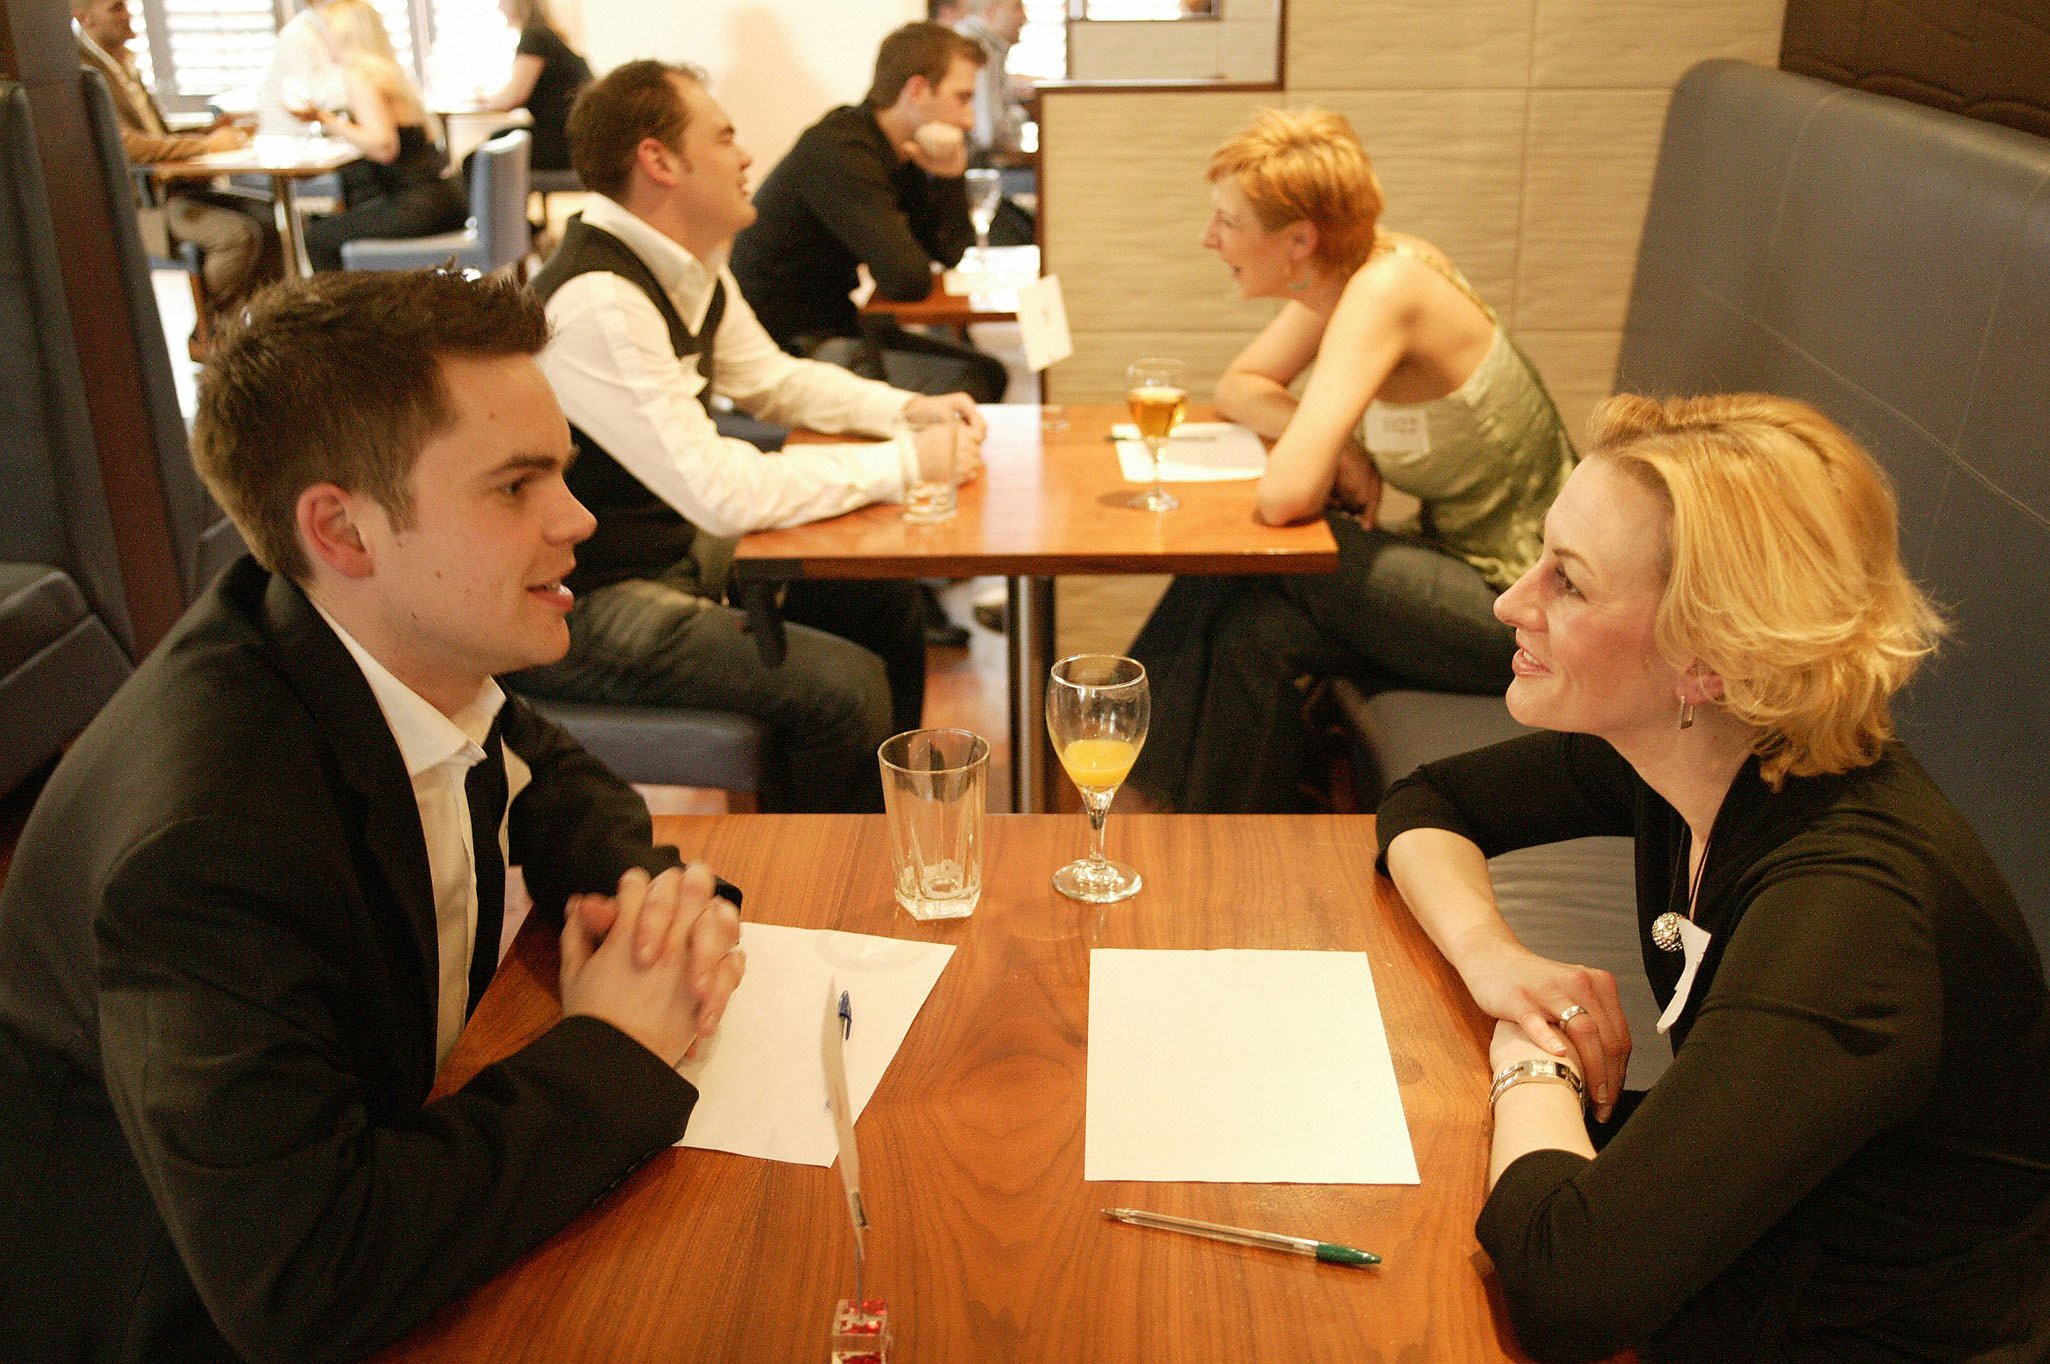 speed up dating 8 reviews of pre-dating speed dating i decided to try speed dating after being frustrated with online dating and all the time that takes let alone issues like photos not being up to date etc being a busy professional and having known about.